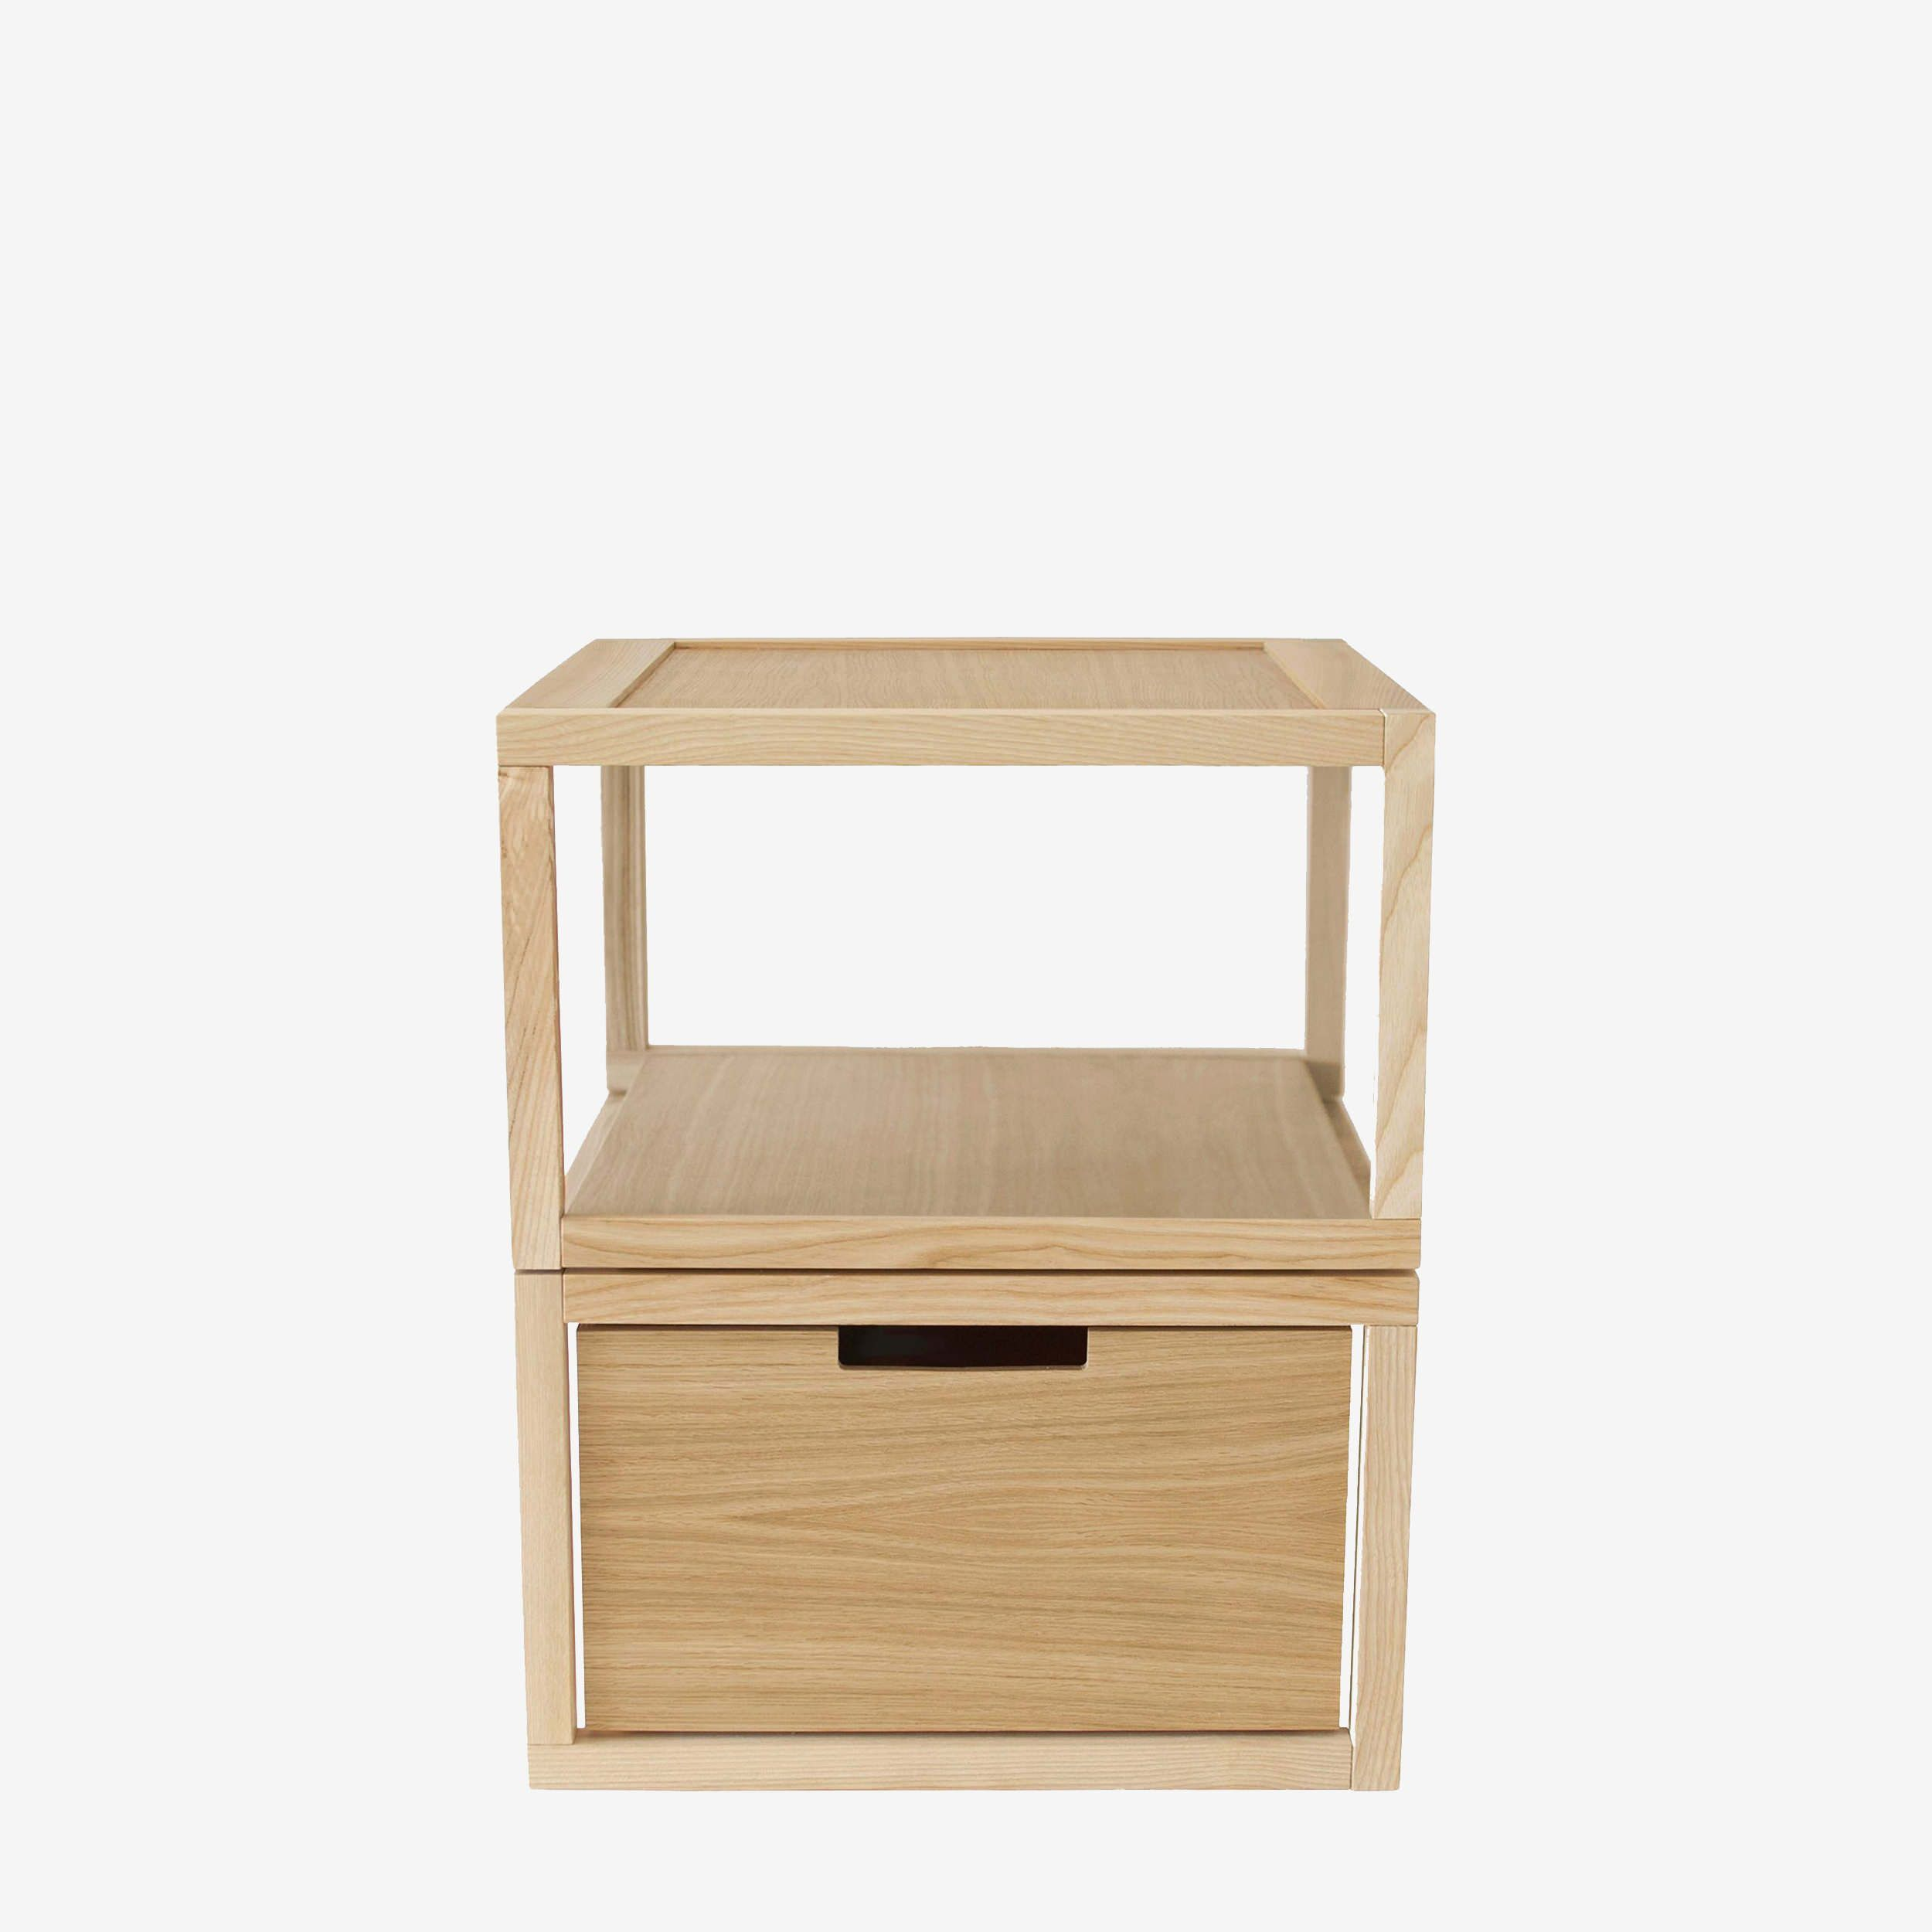 Playwell Storage Boxes